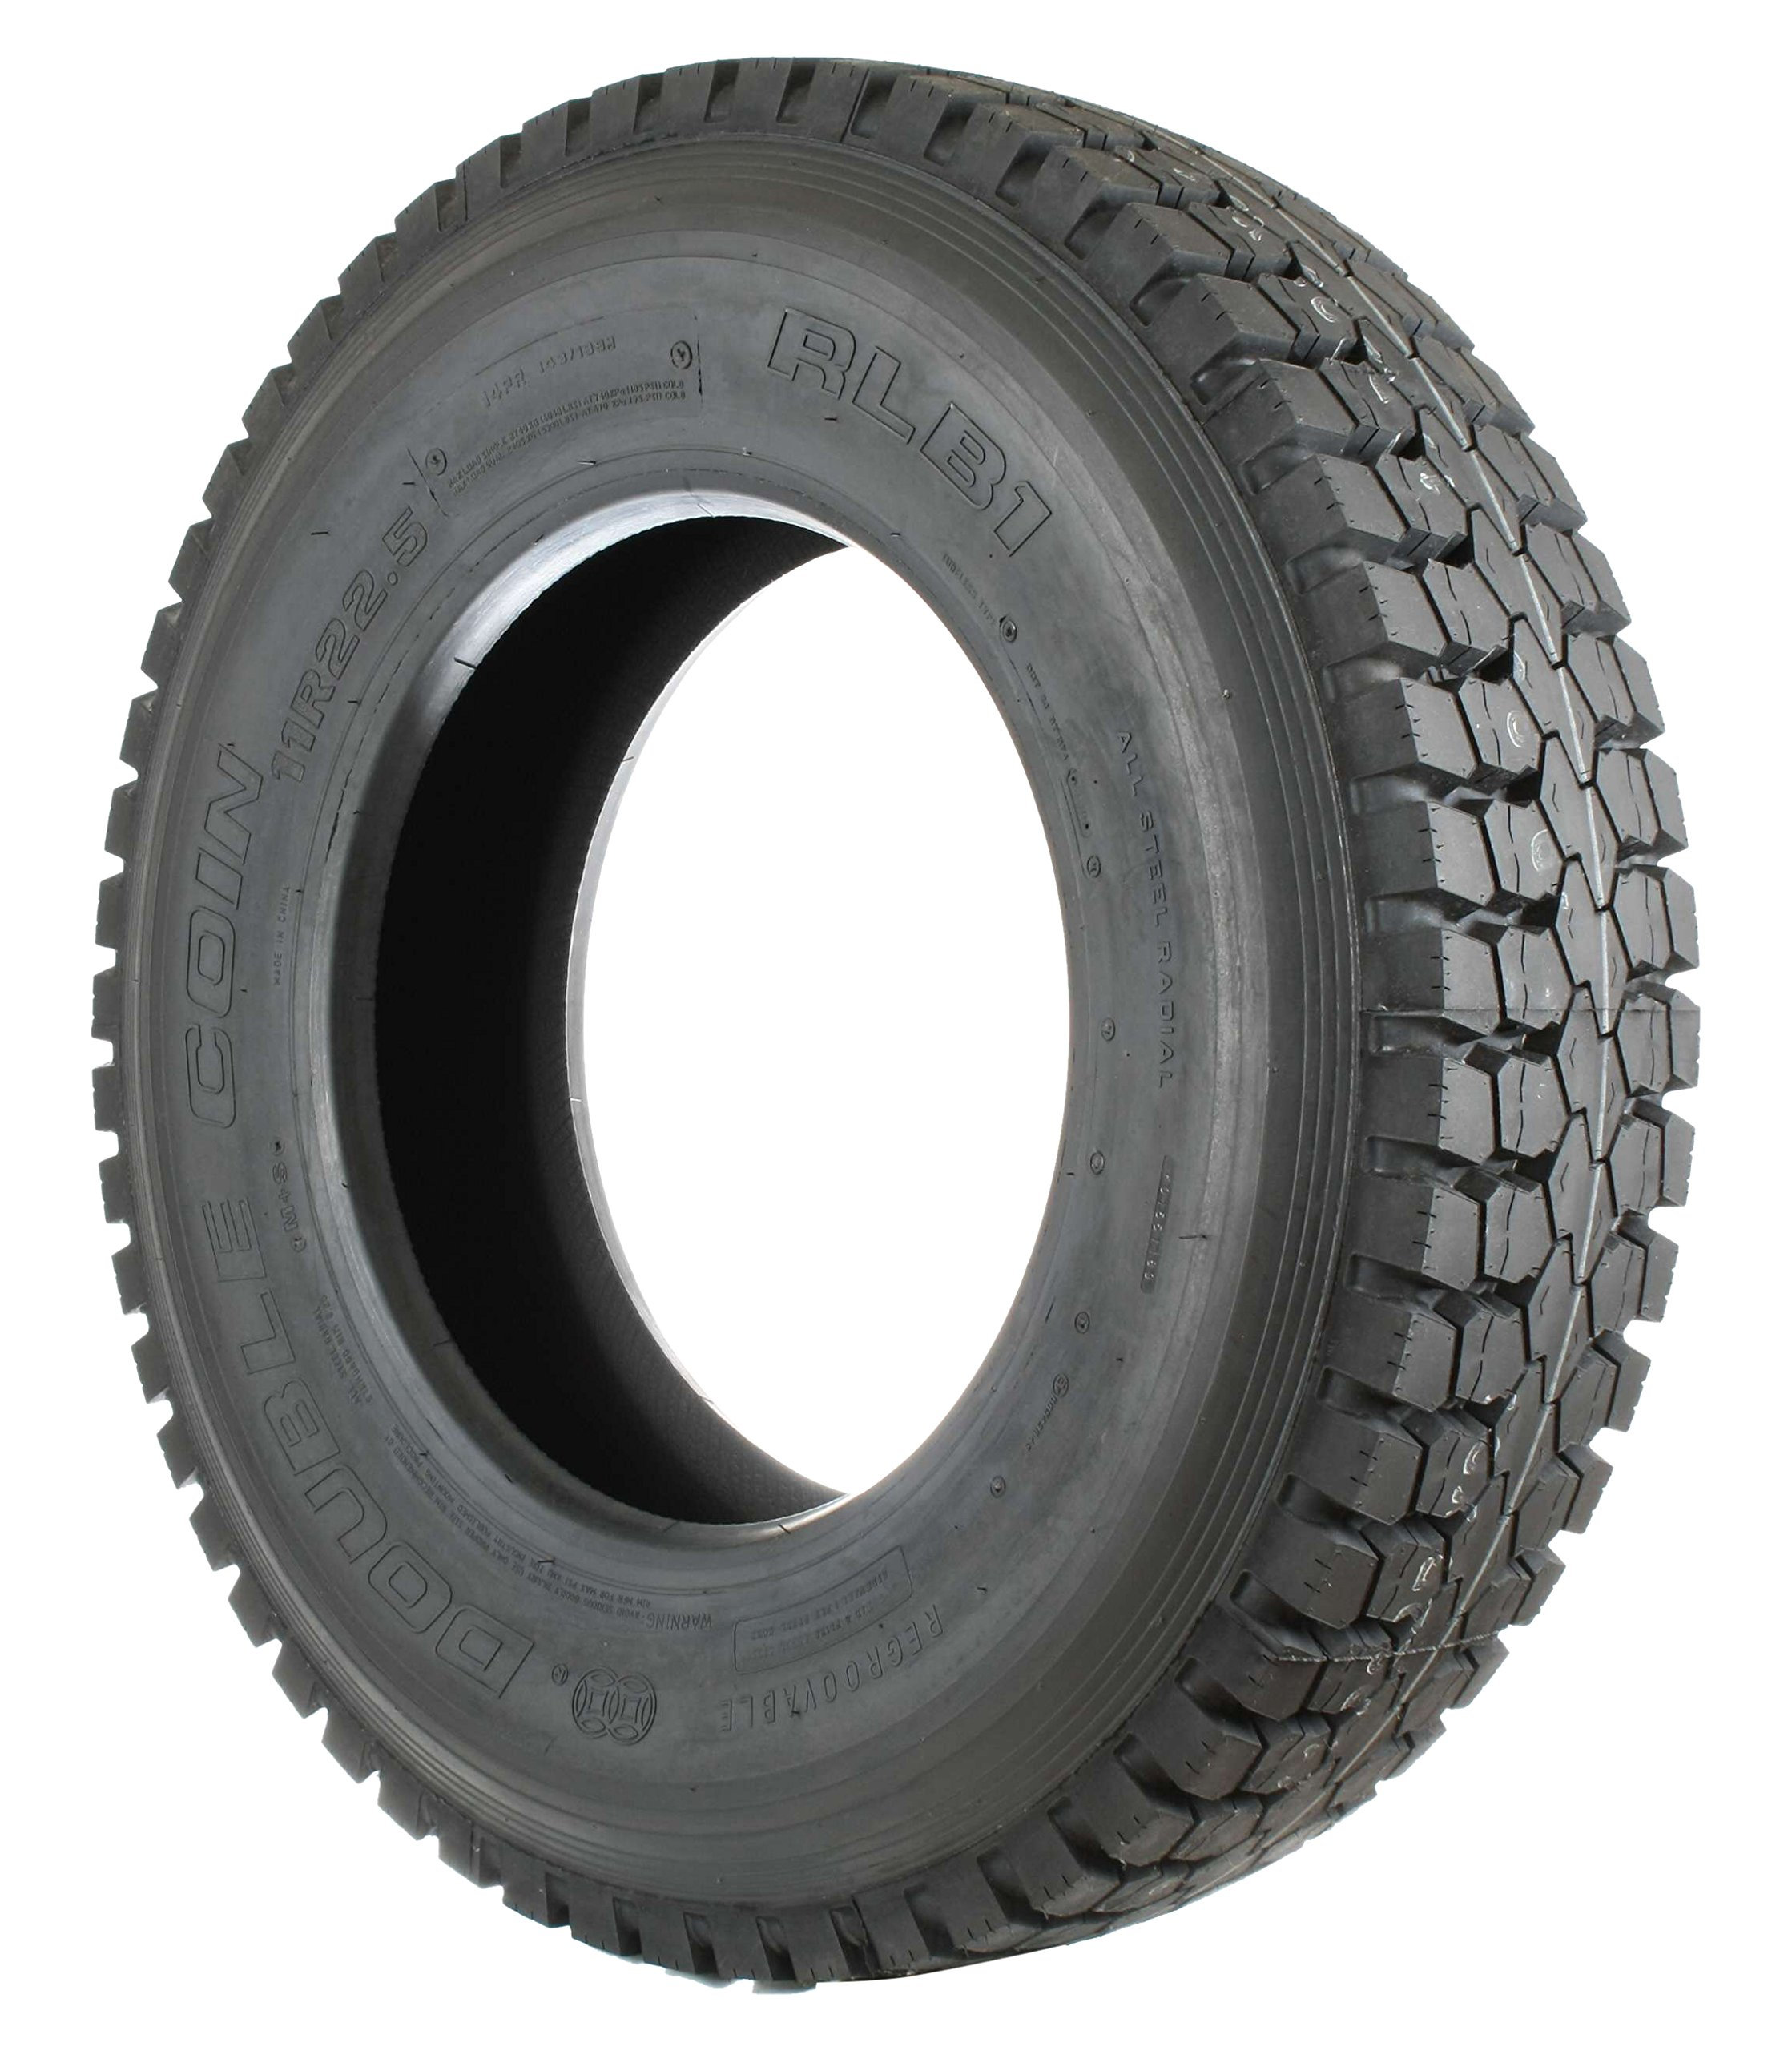 Double Coin RLB1 Open Shoulder Drive-Position Commercial Radial Truck Tire - 11R24.5 14 ply